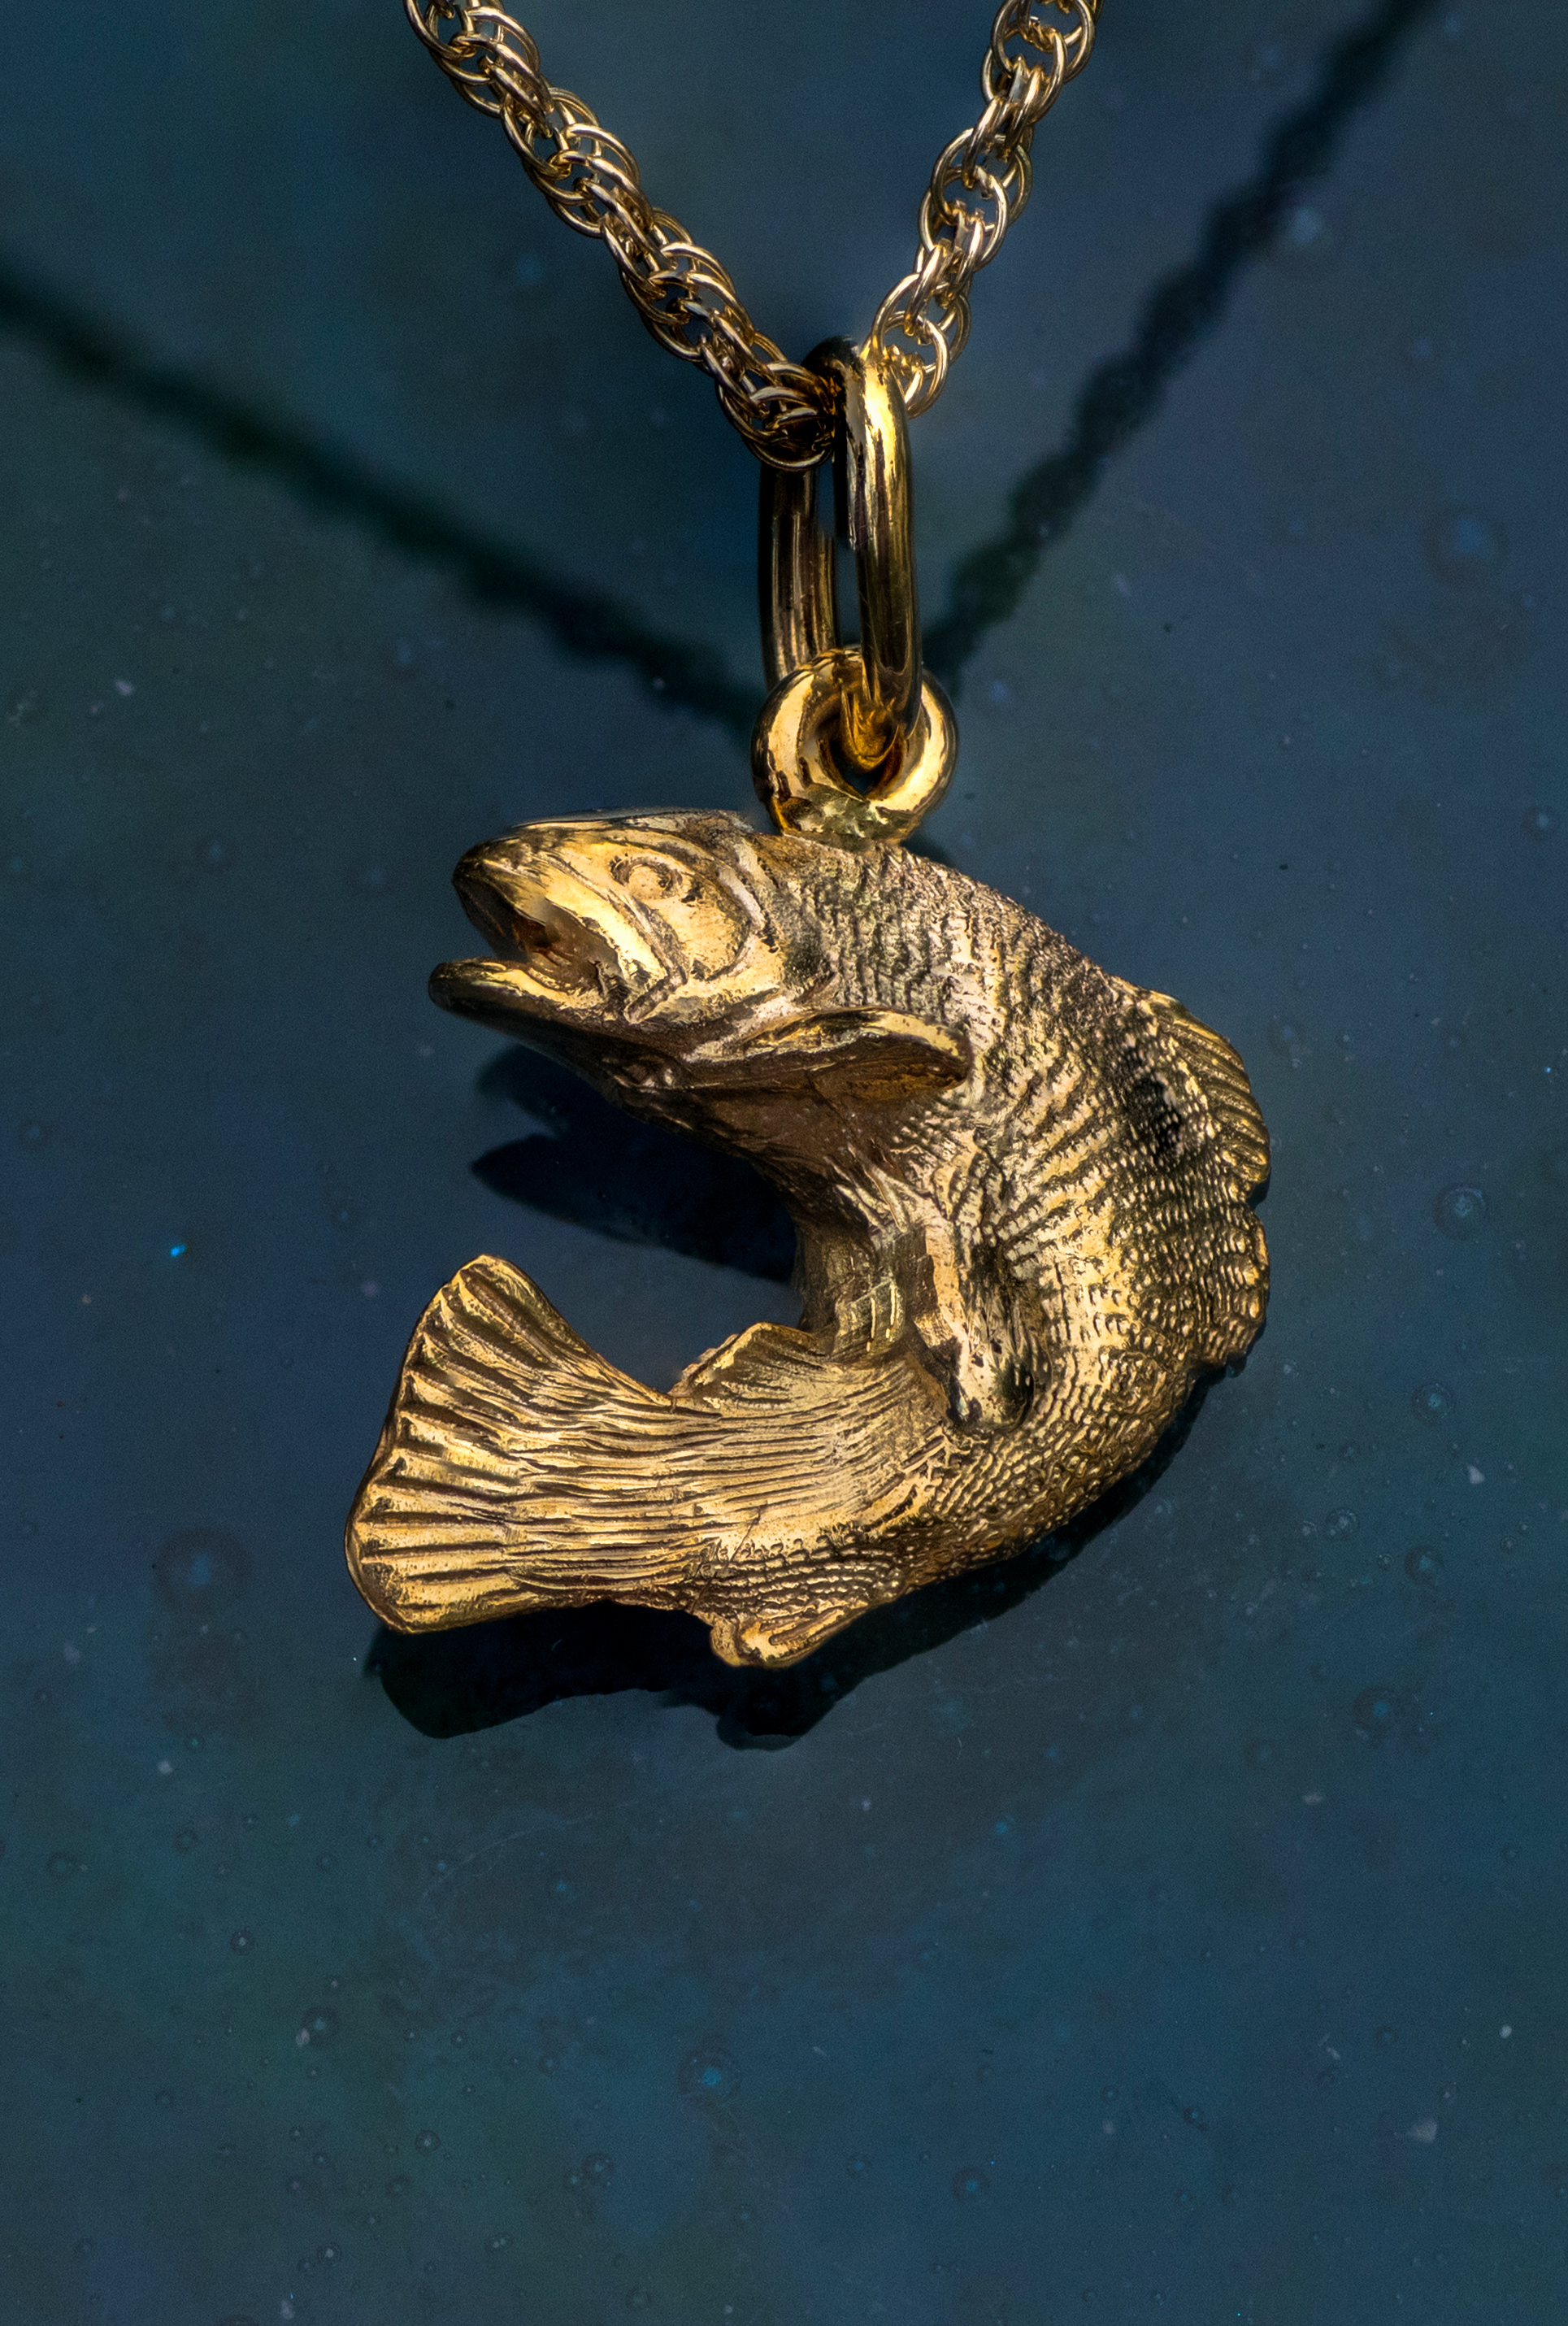 Alaska Salmon Crafted in 14kt Yellow Gold.